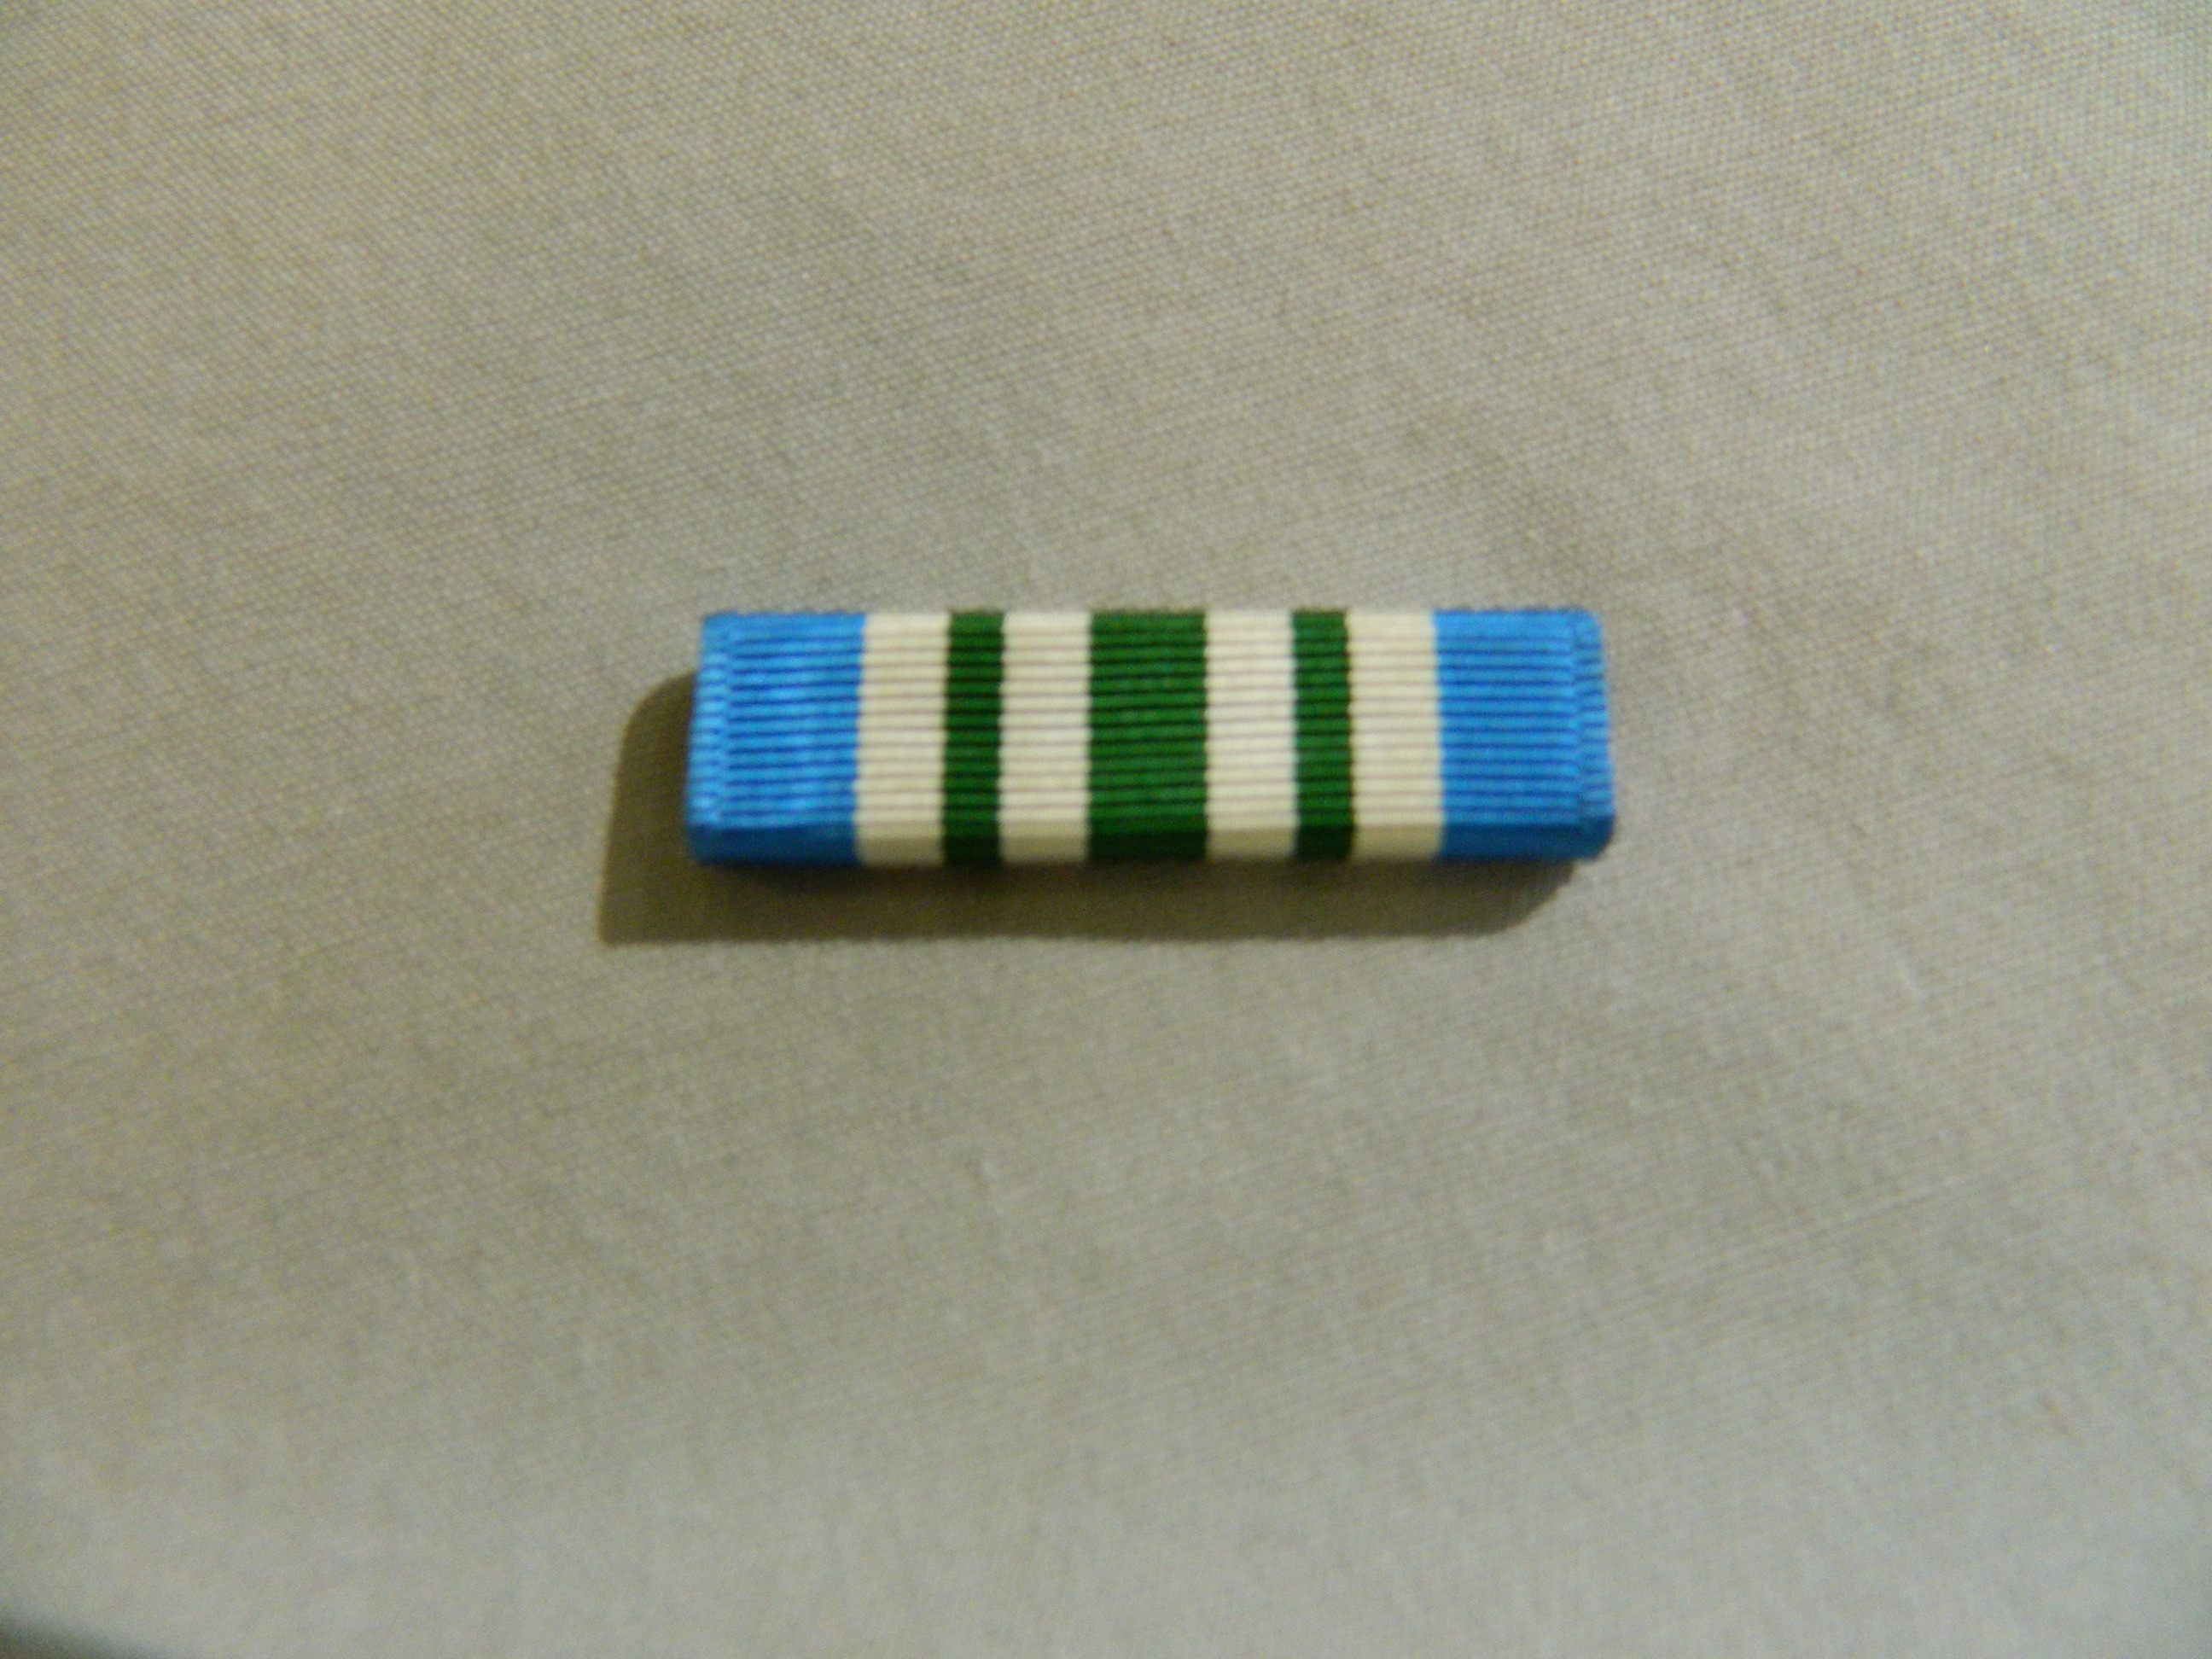 Ribbon: Joint Service Commendation Medal